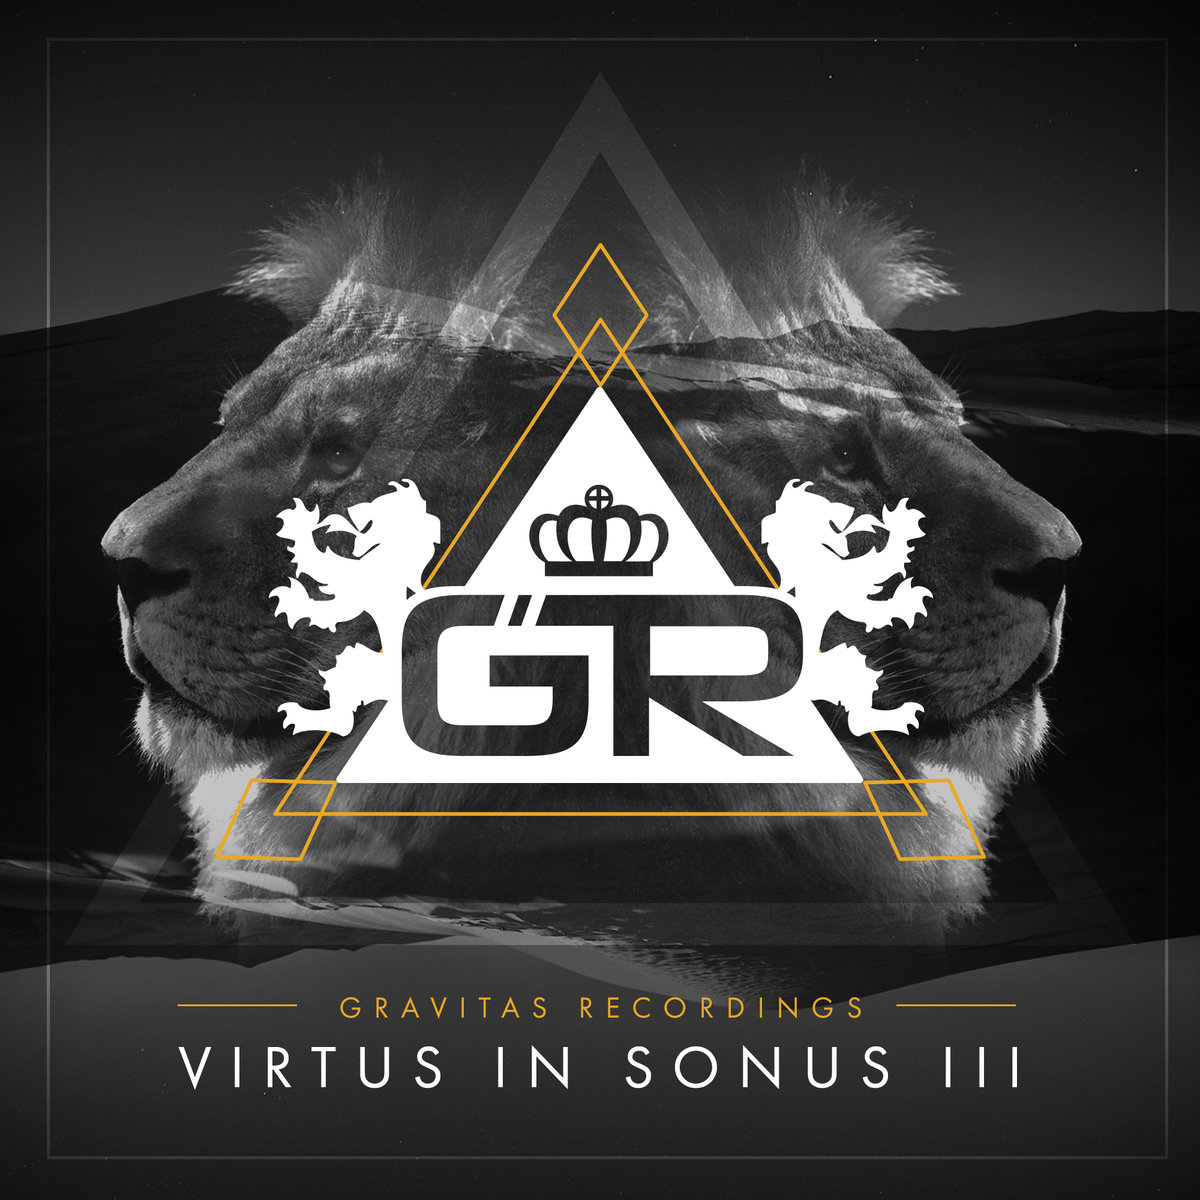 The OriGinALz - 1Up @ 'Virtus In Sonus III' album (Austin)